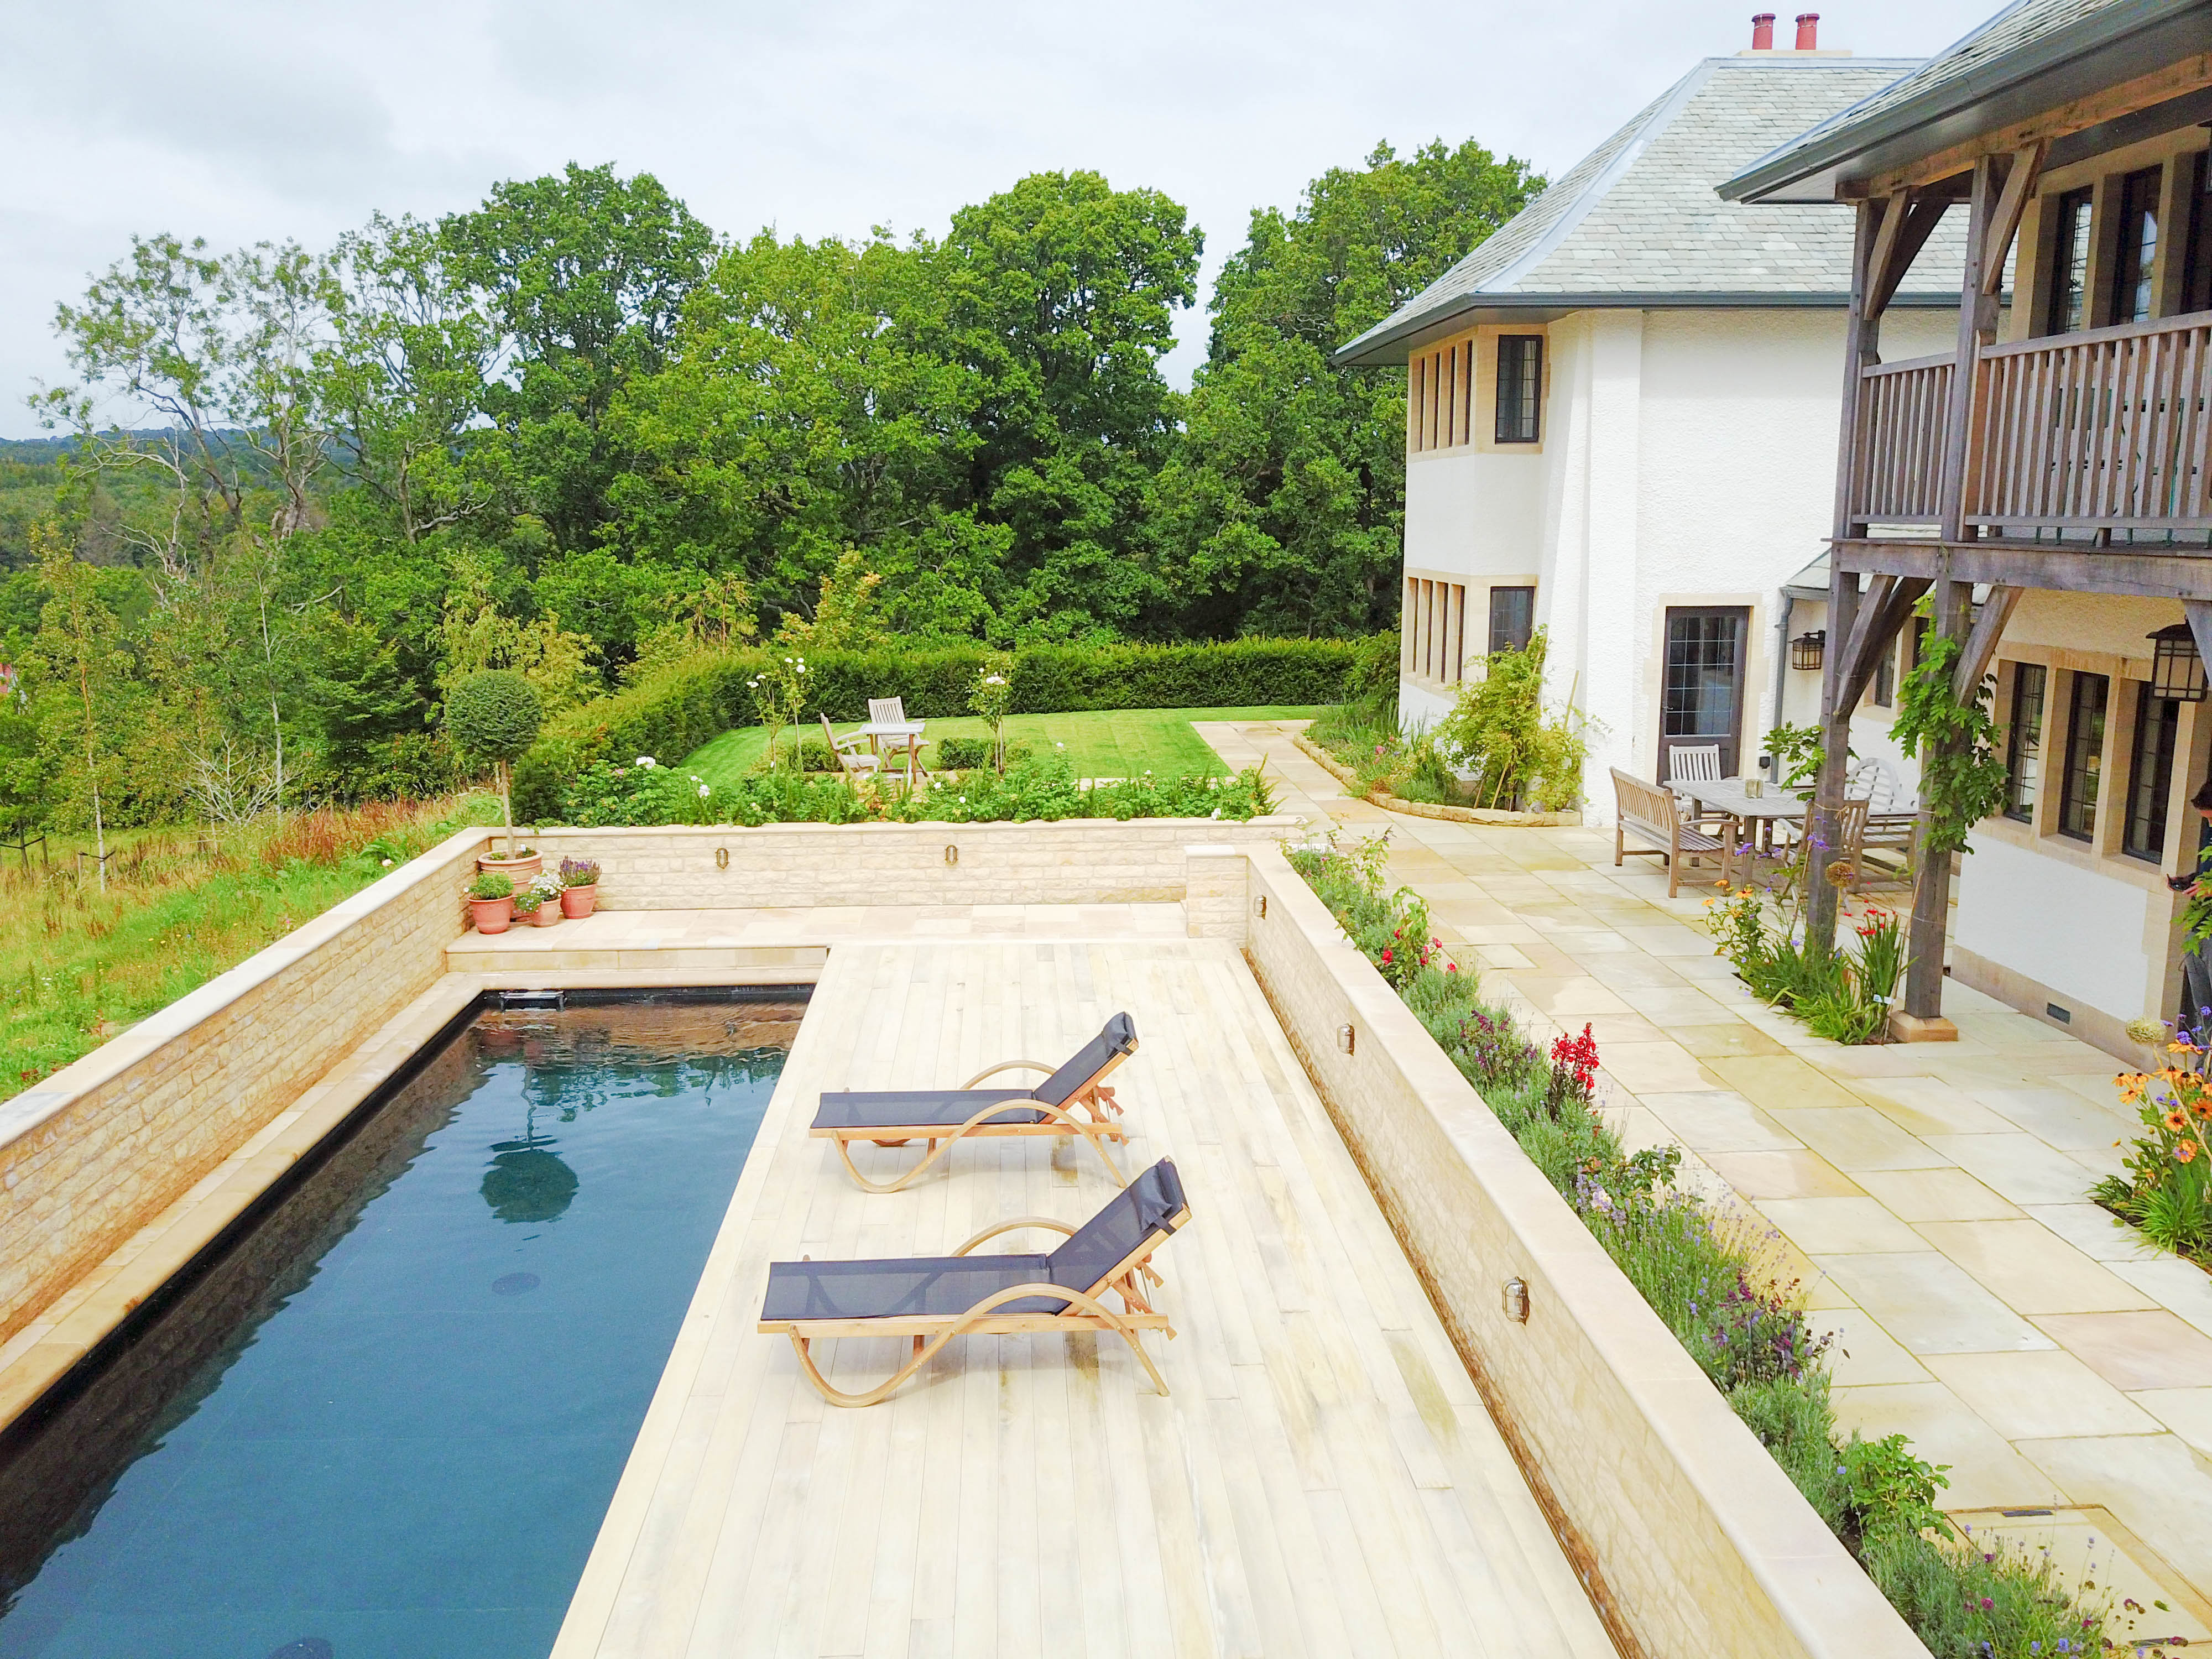 how much does it cost to build a natural pool